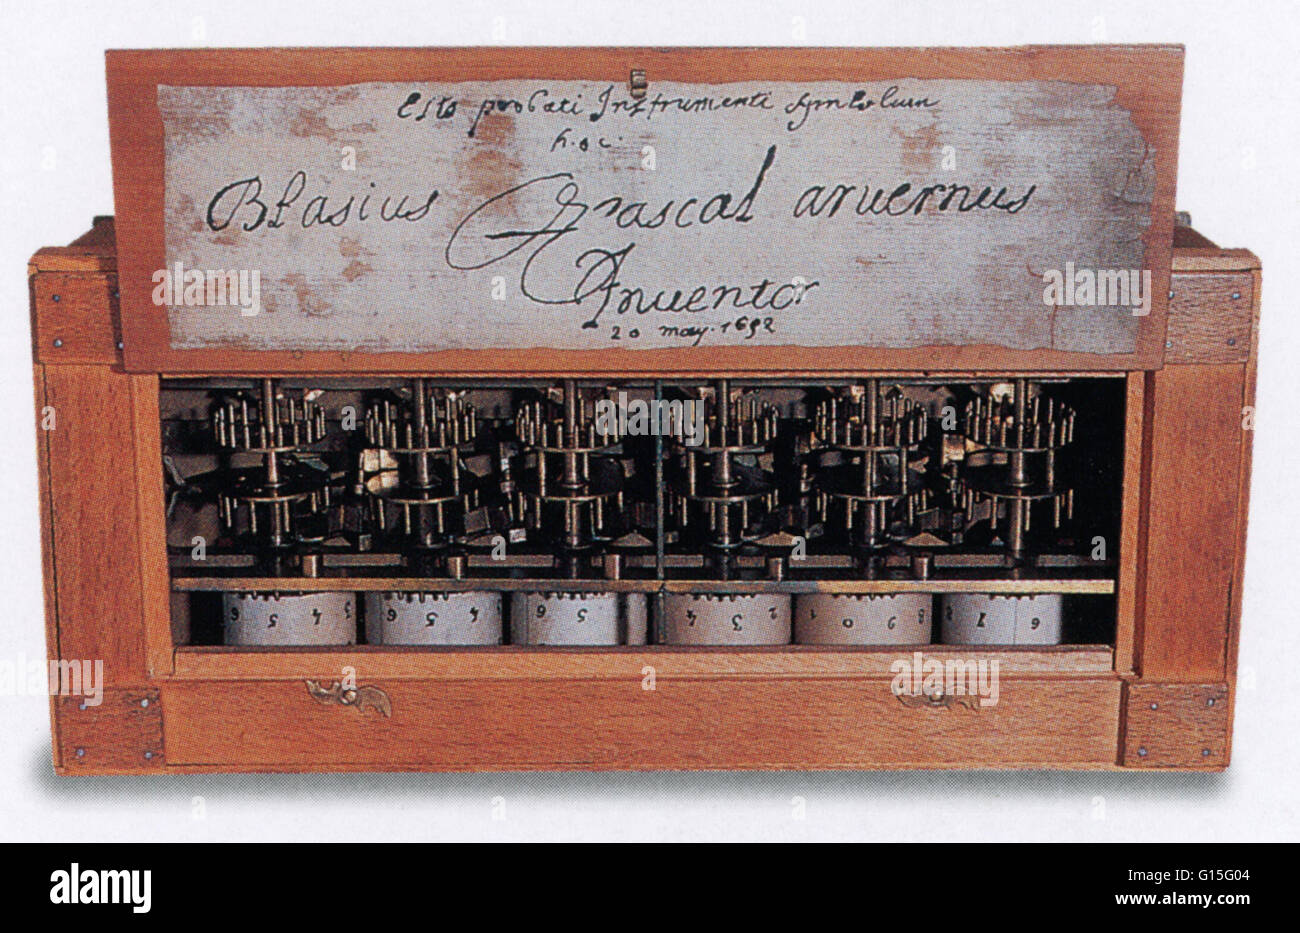 First digital calculator (pascal's calculator) by 18-year-old.